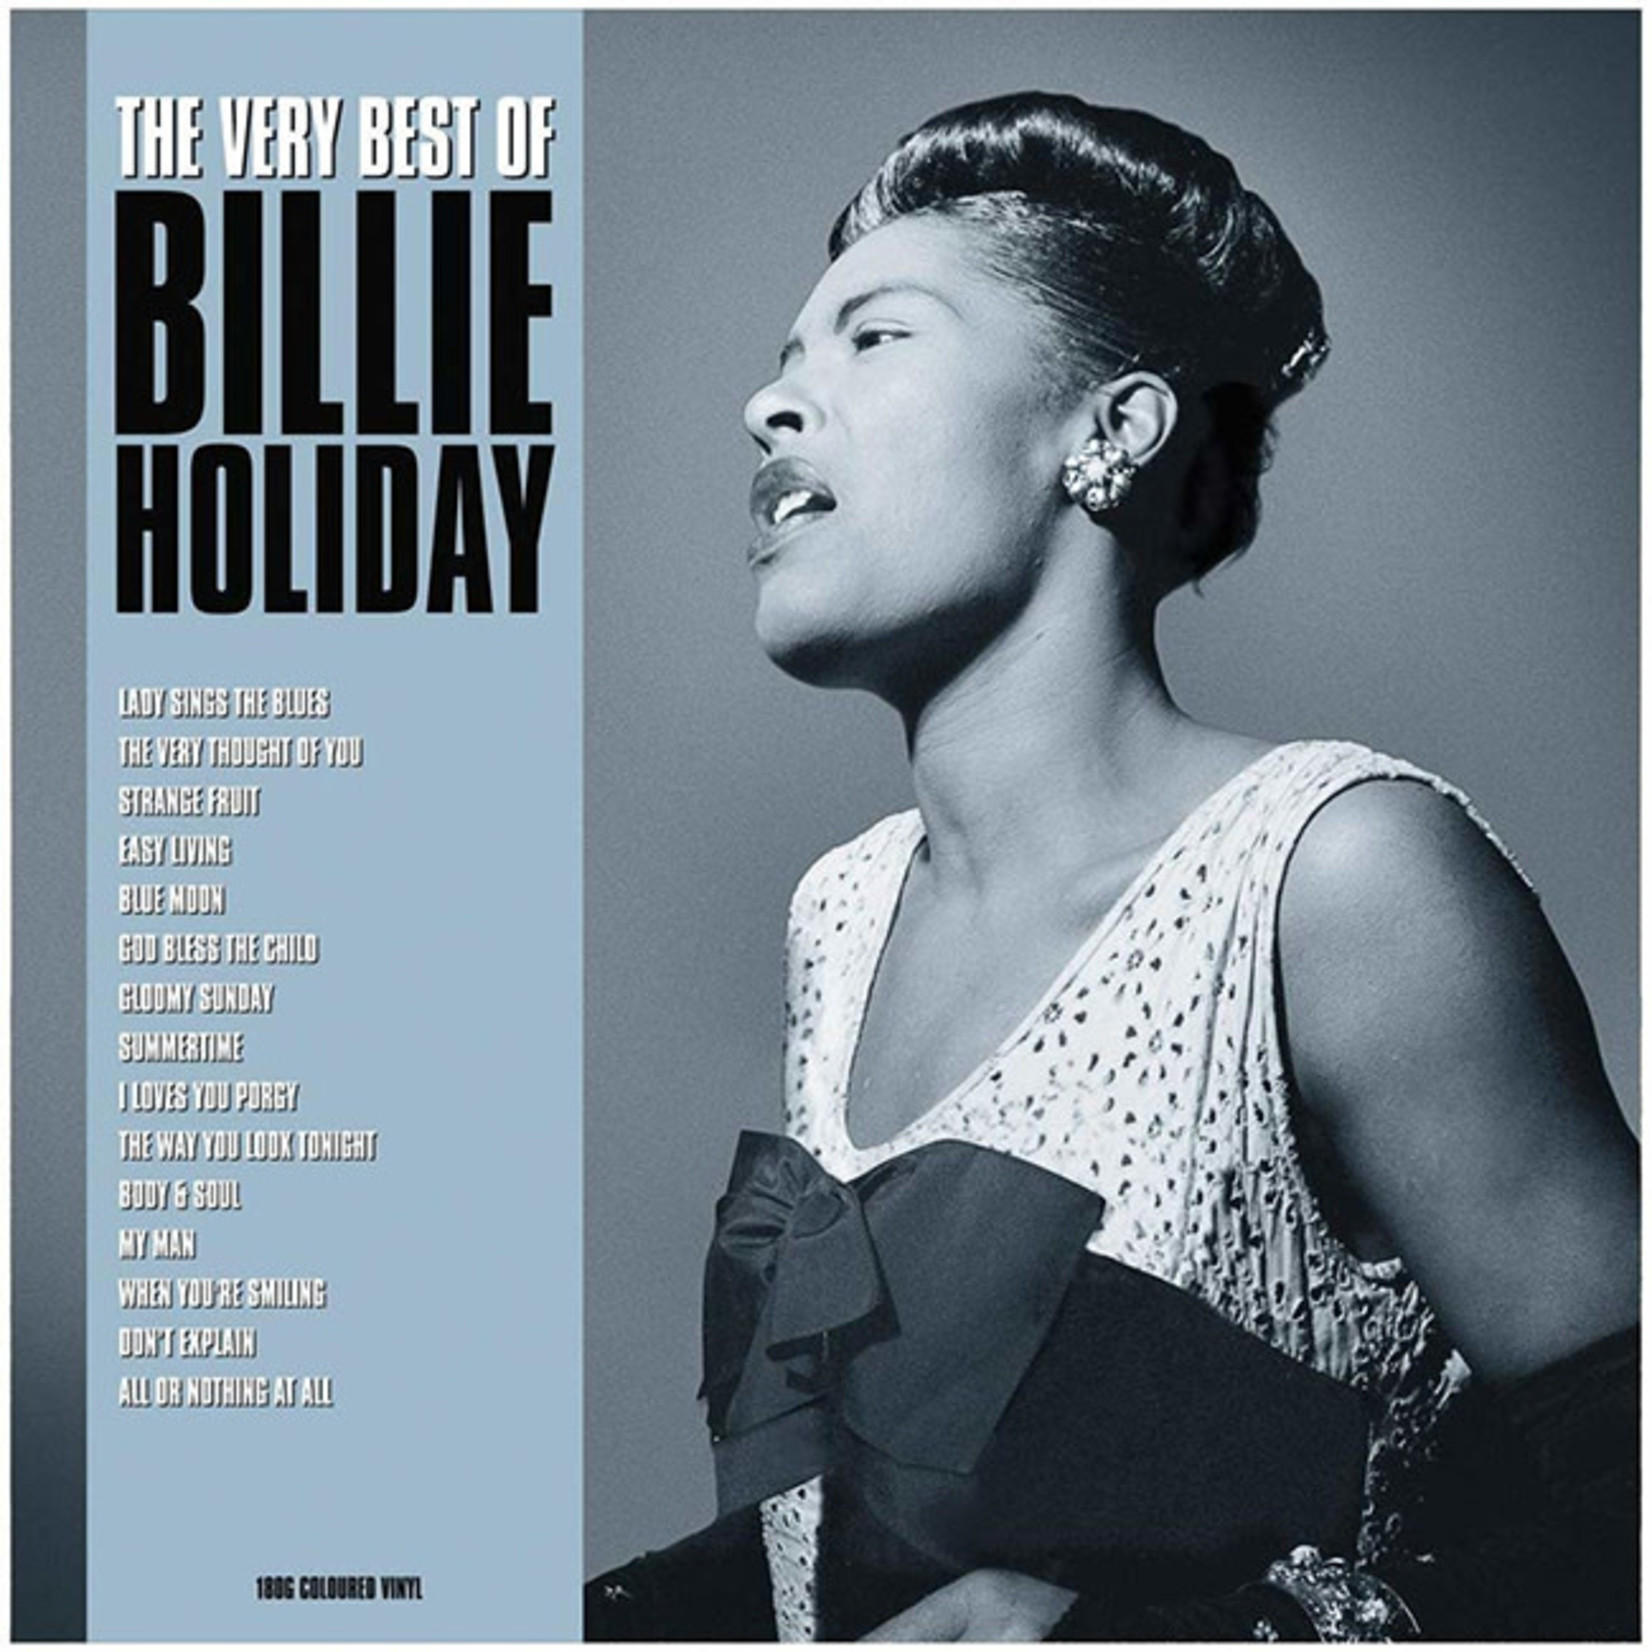 [New] Holiday, Billie: The Very Best Of (blue vinyl)